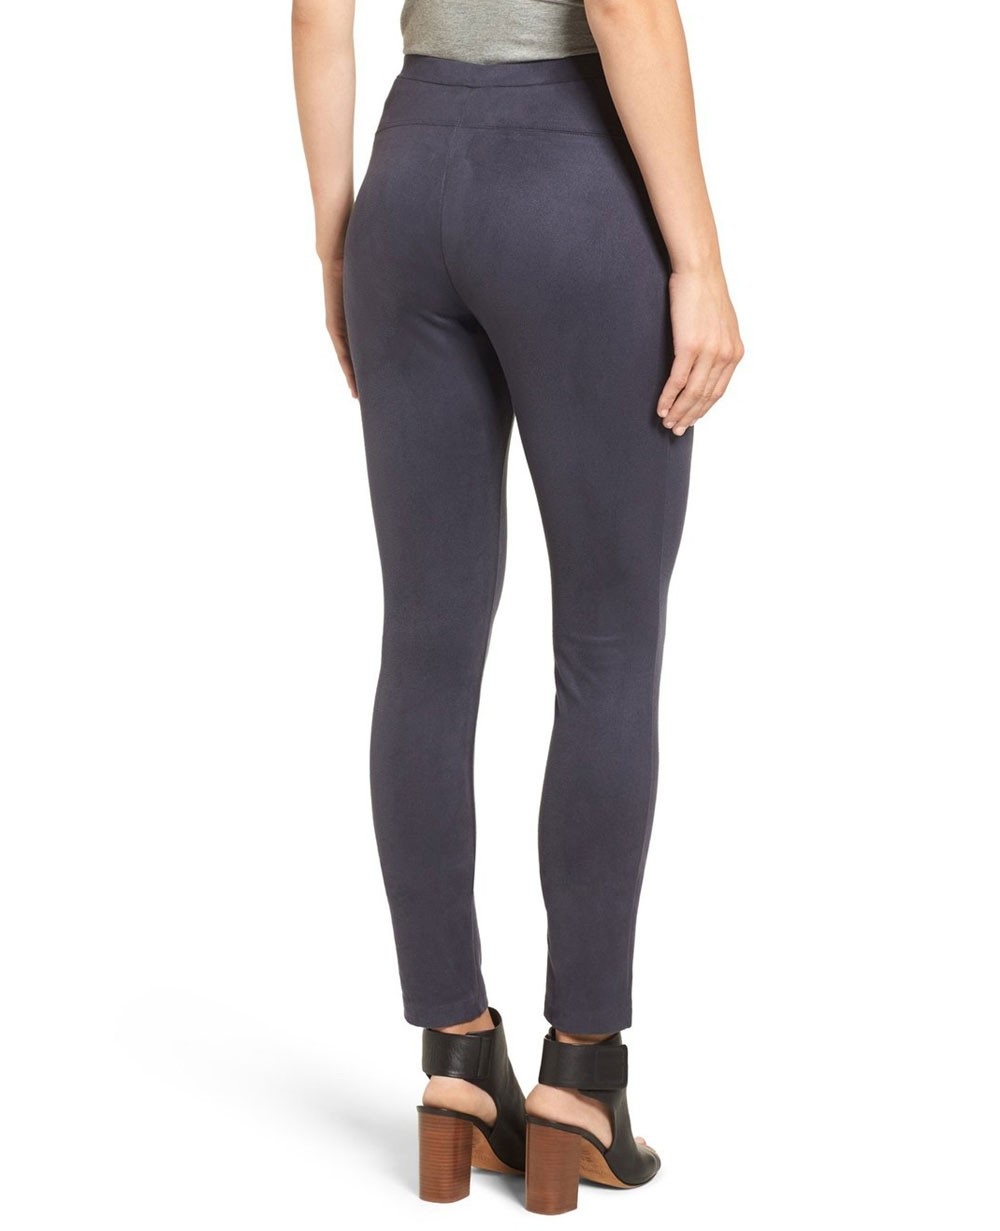 Kmart has the best selection of women's leggings in stock. Get the Women's Leggings you want from the brands you love today at Kmart.